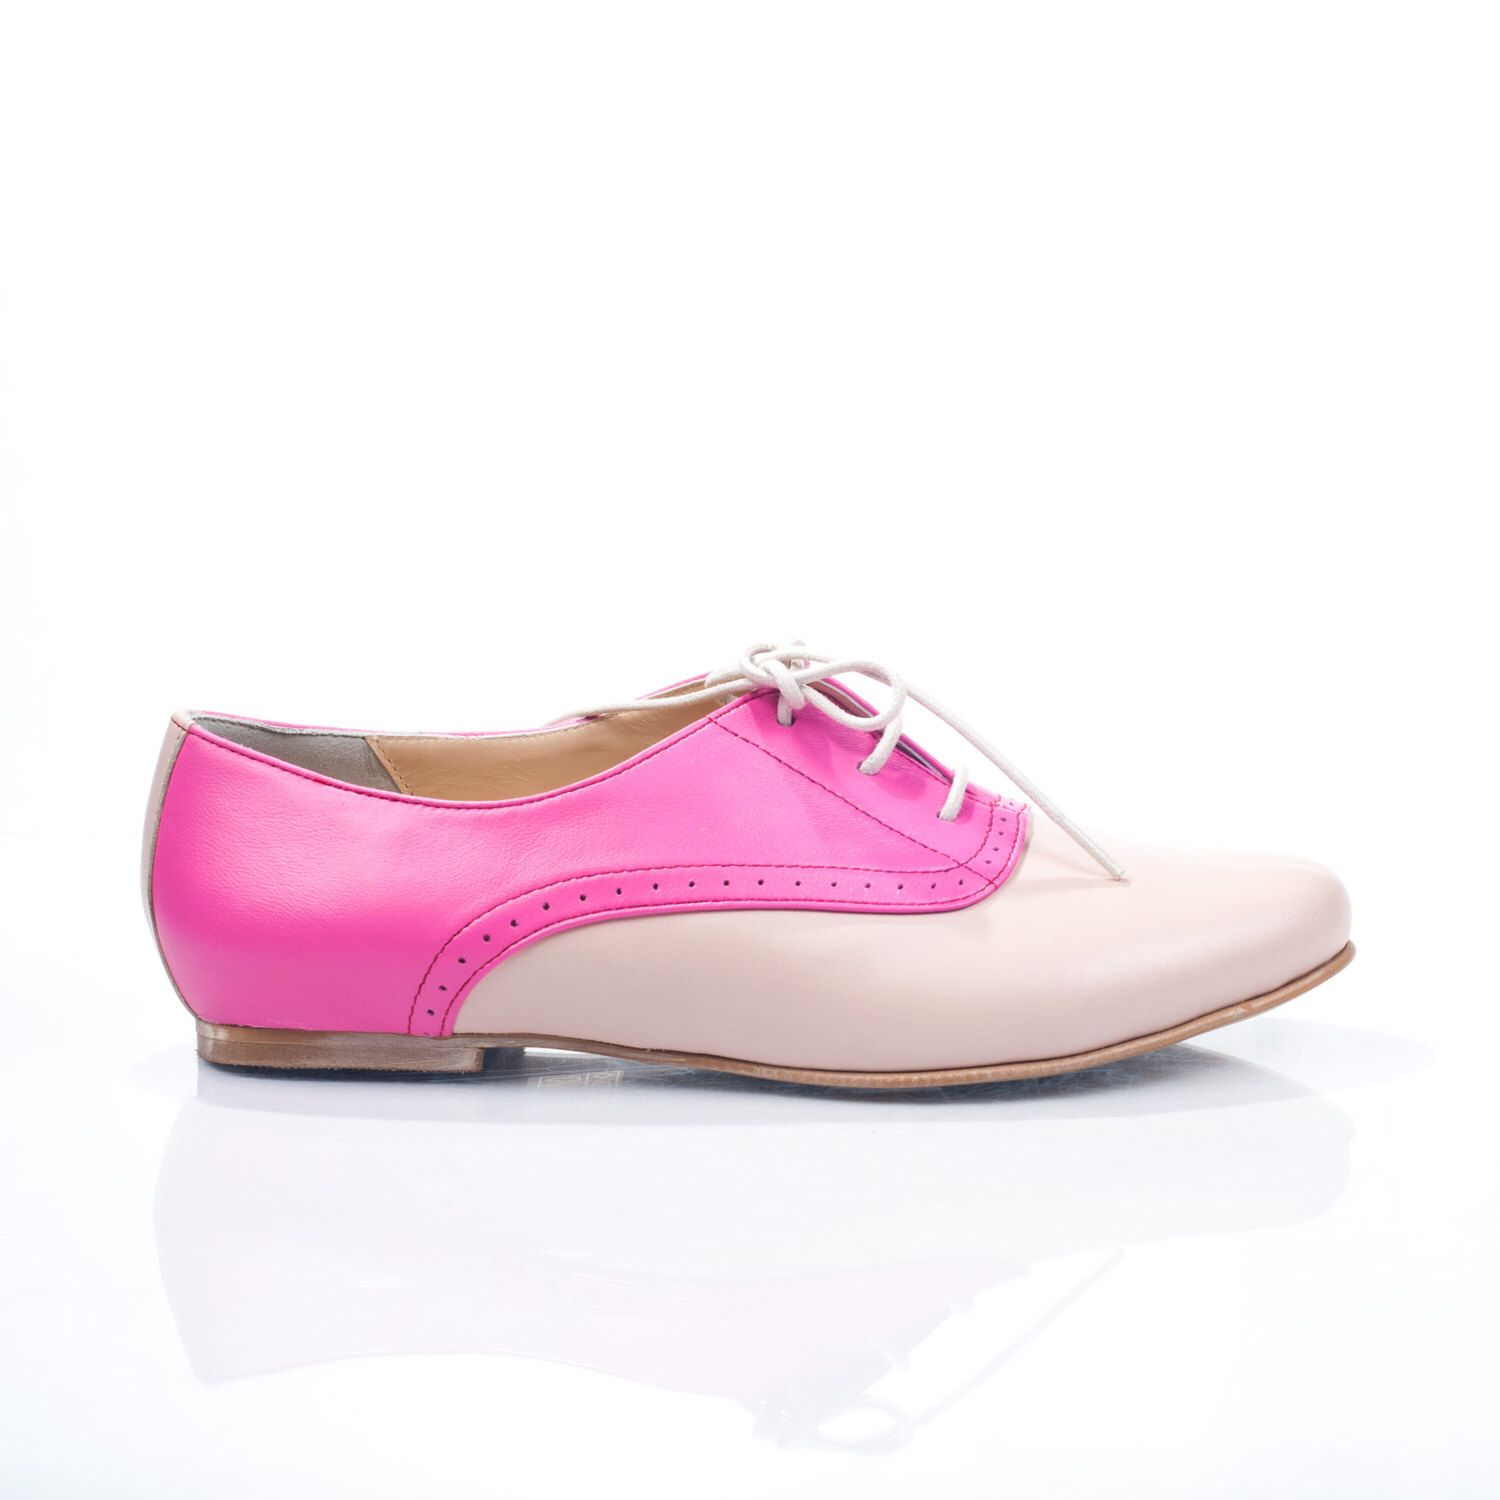 nouveau style 85940 72e4e Pin by A. Lawrence on shoes | Chaussures oxford, Mika, Chaussure